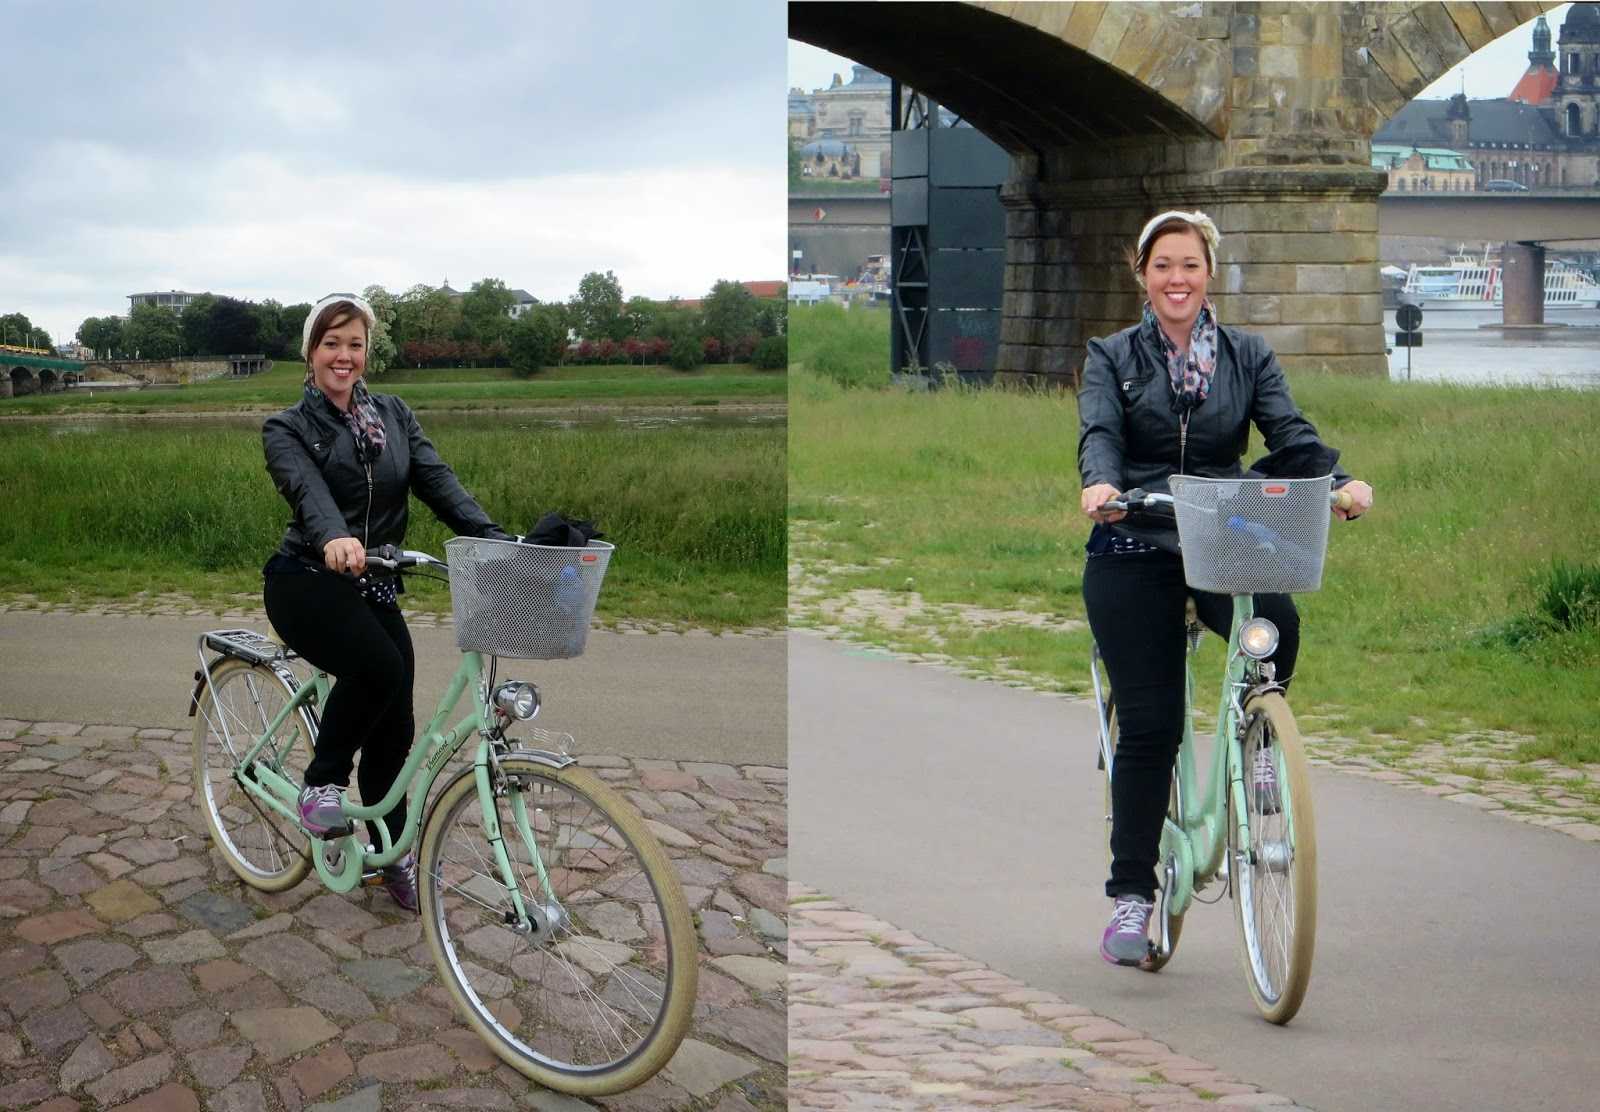 River Elbe, Dresden, Germany, Cycling, Vintage bikes